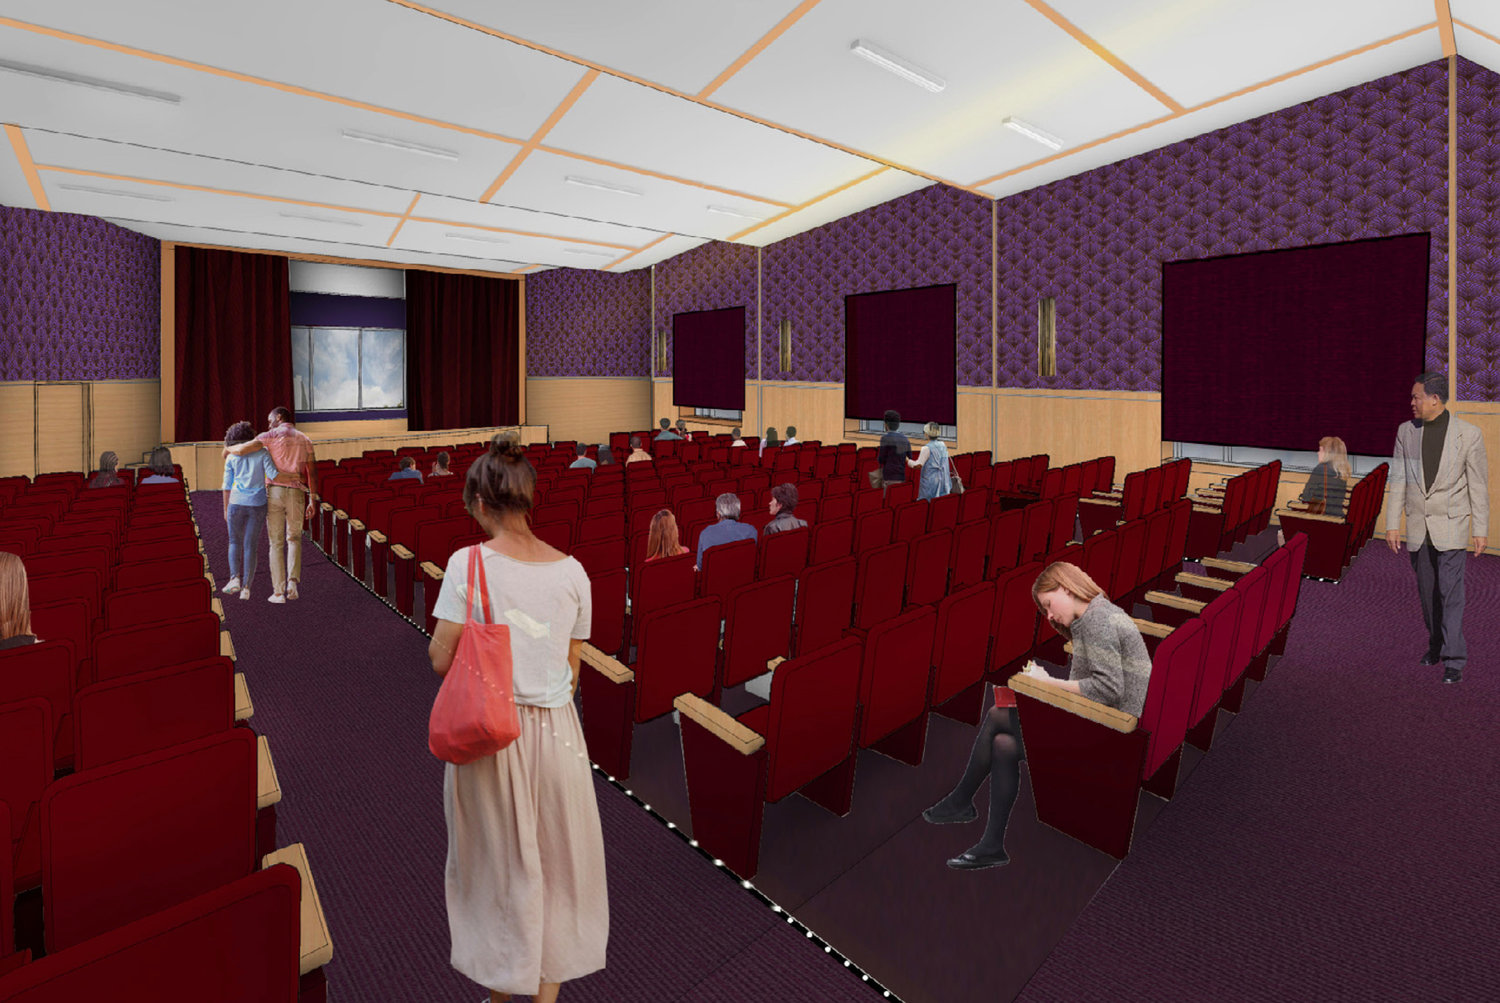 Architectural rendering of finished auditorium